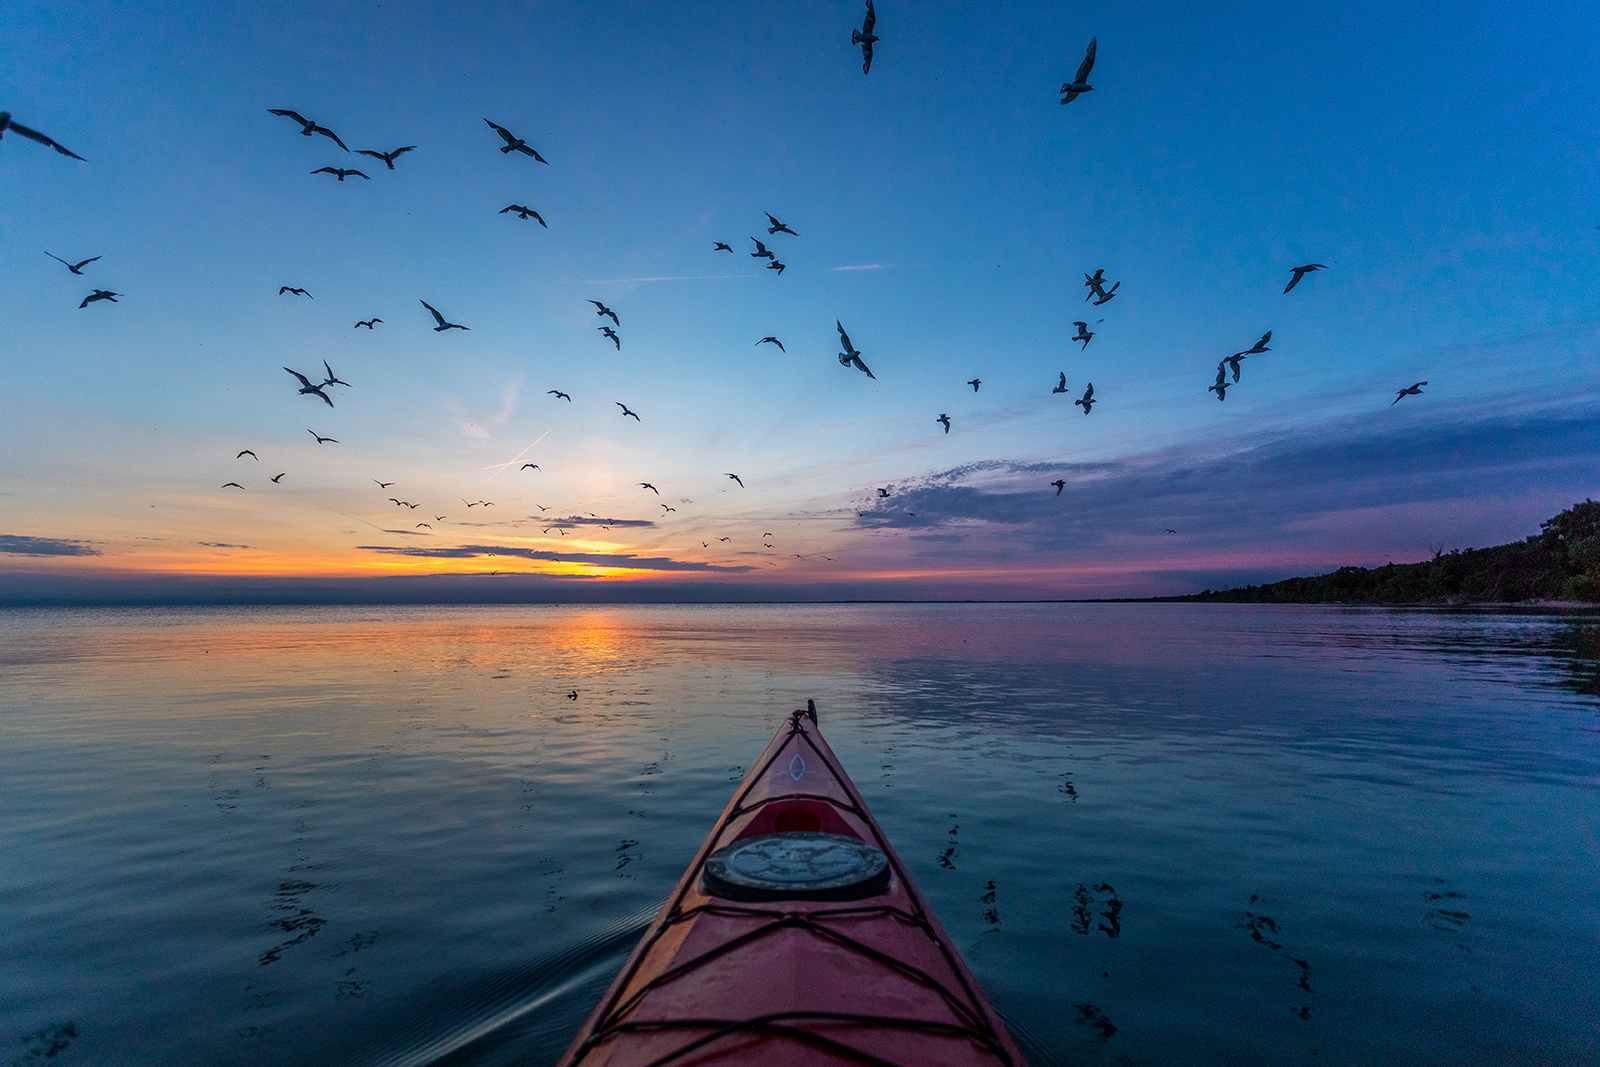 A kayak on water at sunset surrounded by birds